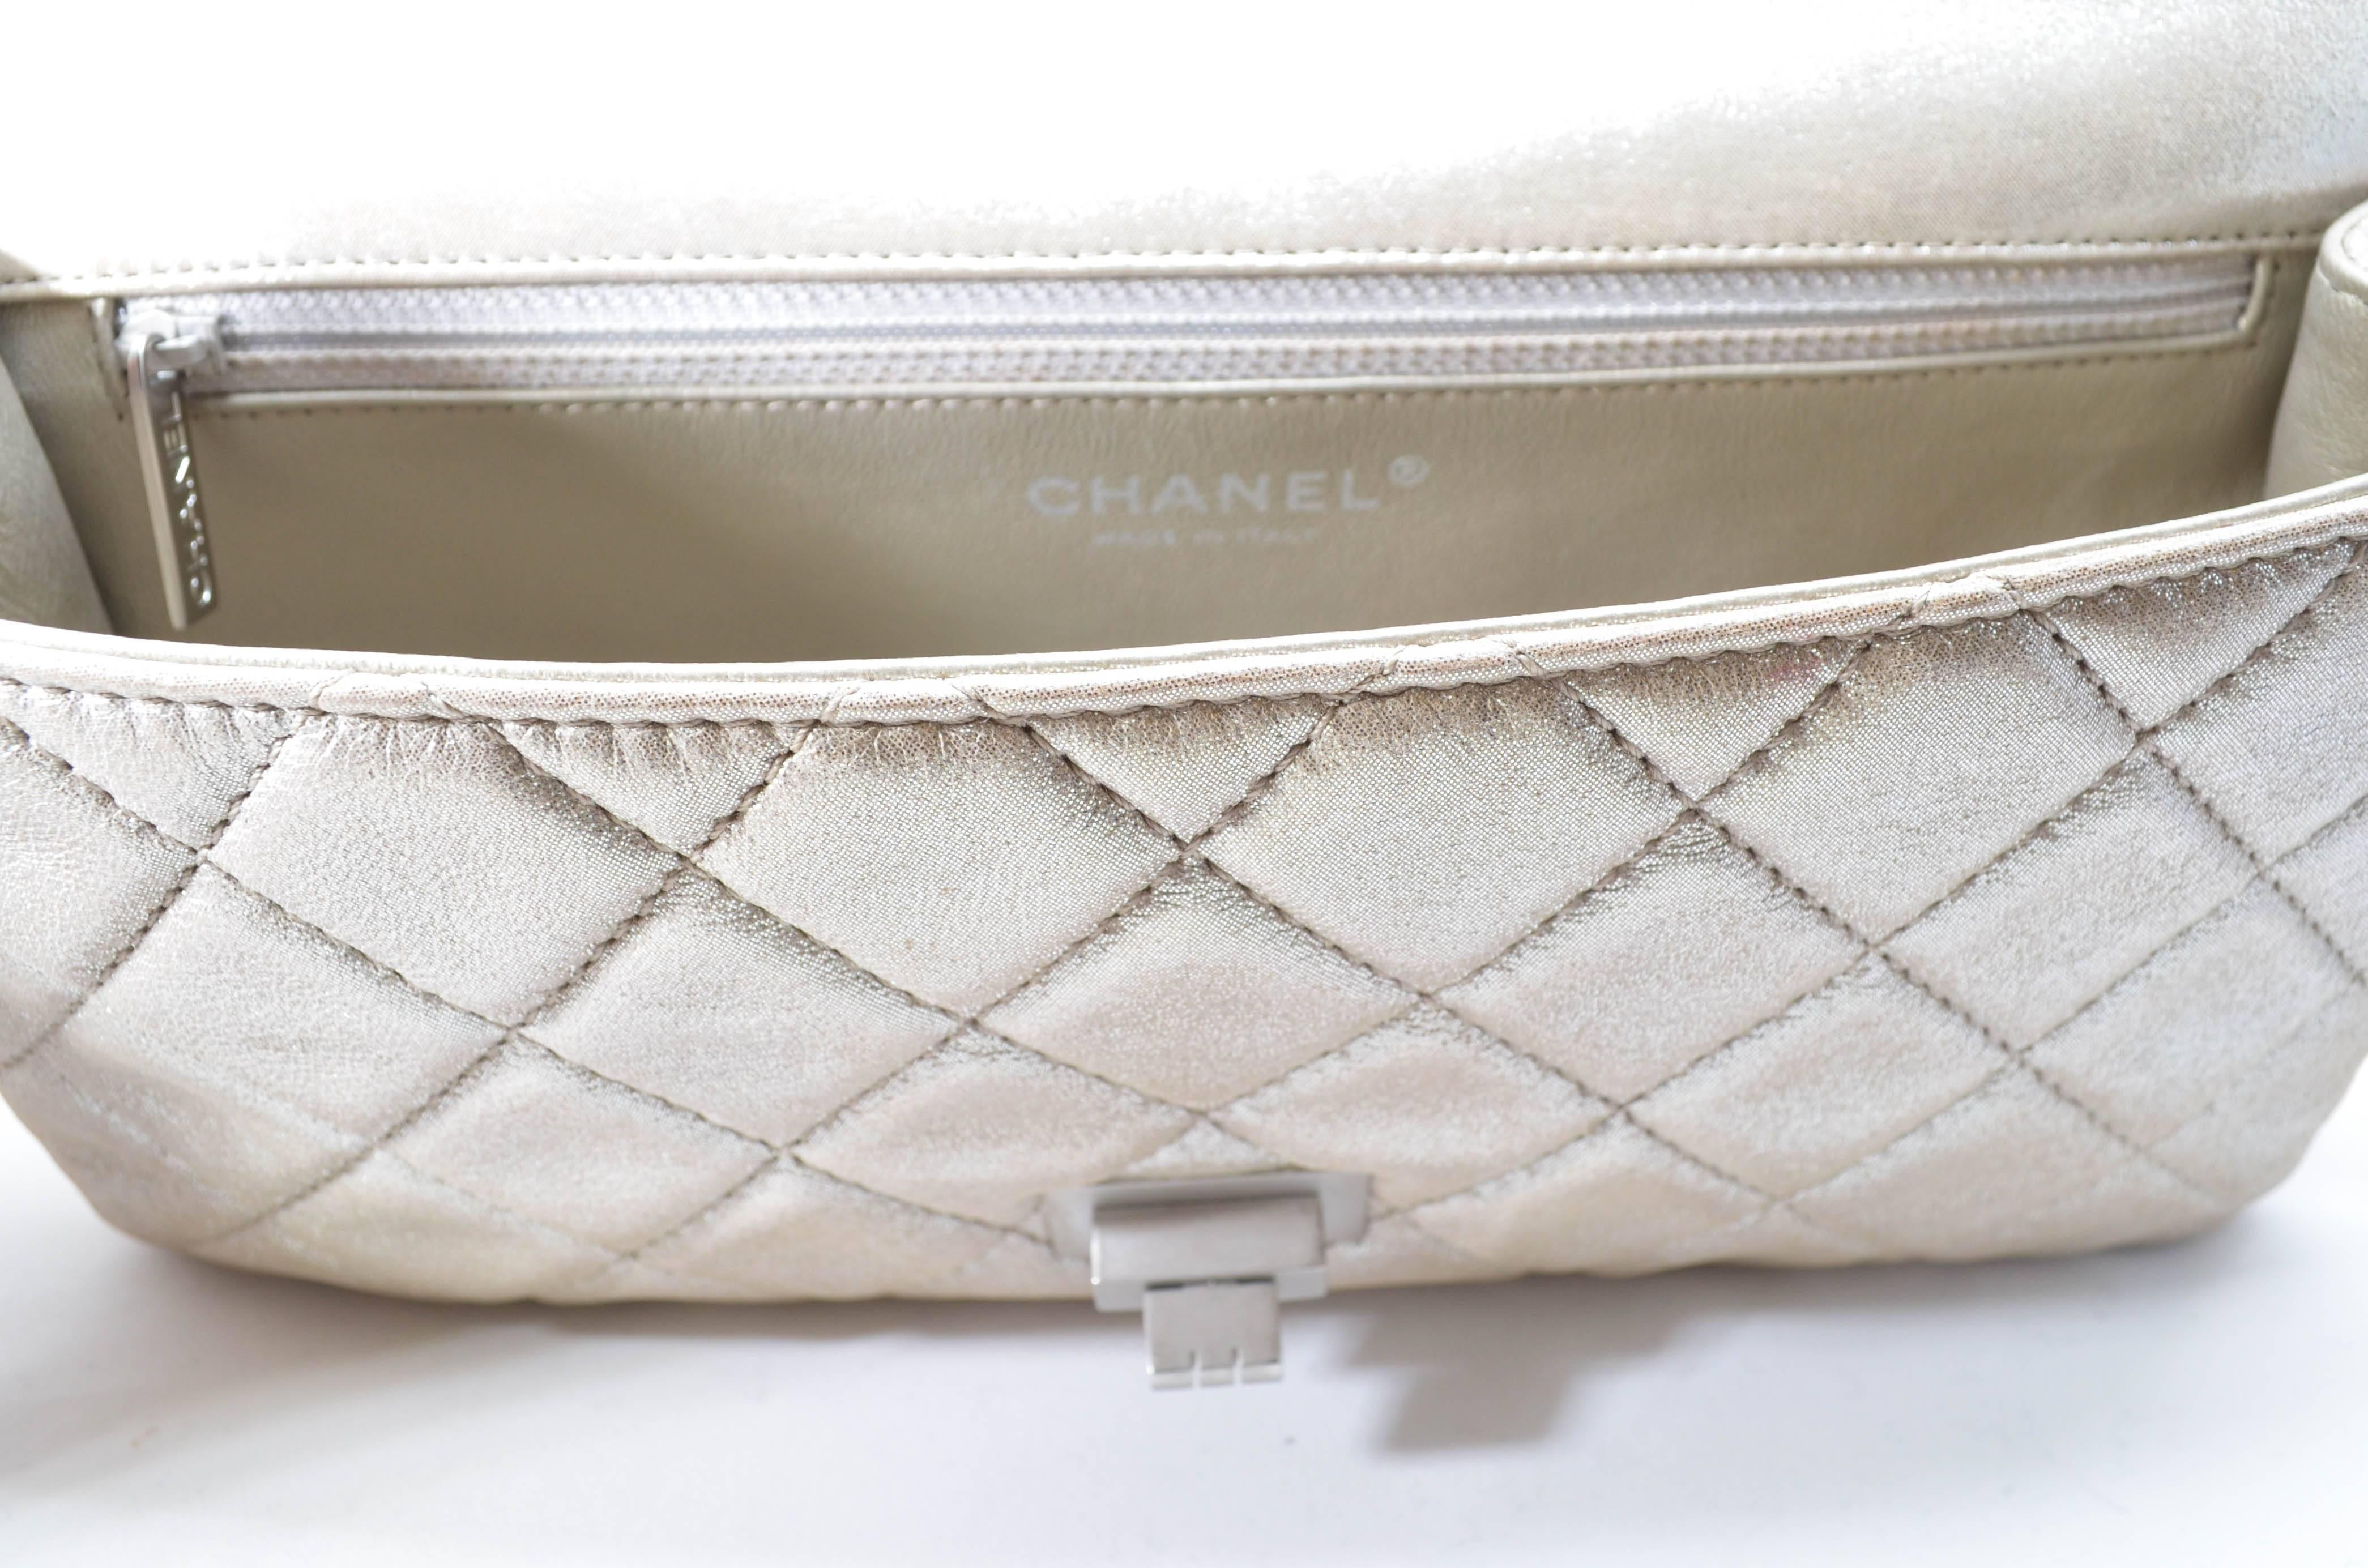 528e1c19e847f5 Chanel Reissue Metallic Quilted Clutch 2012 at 1stdibs